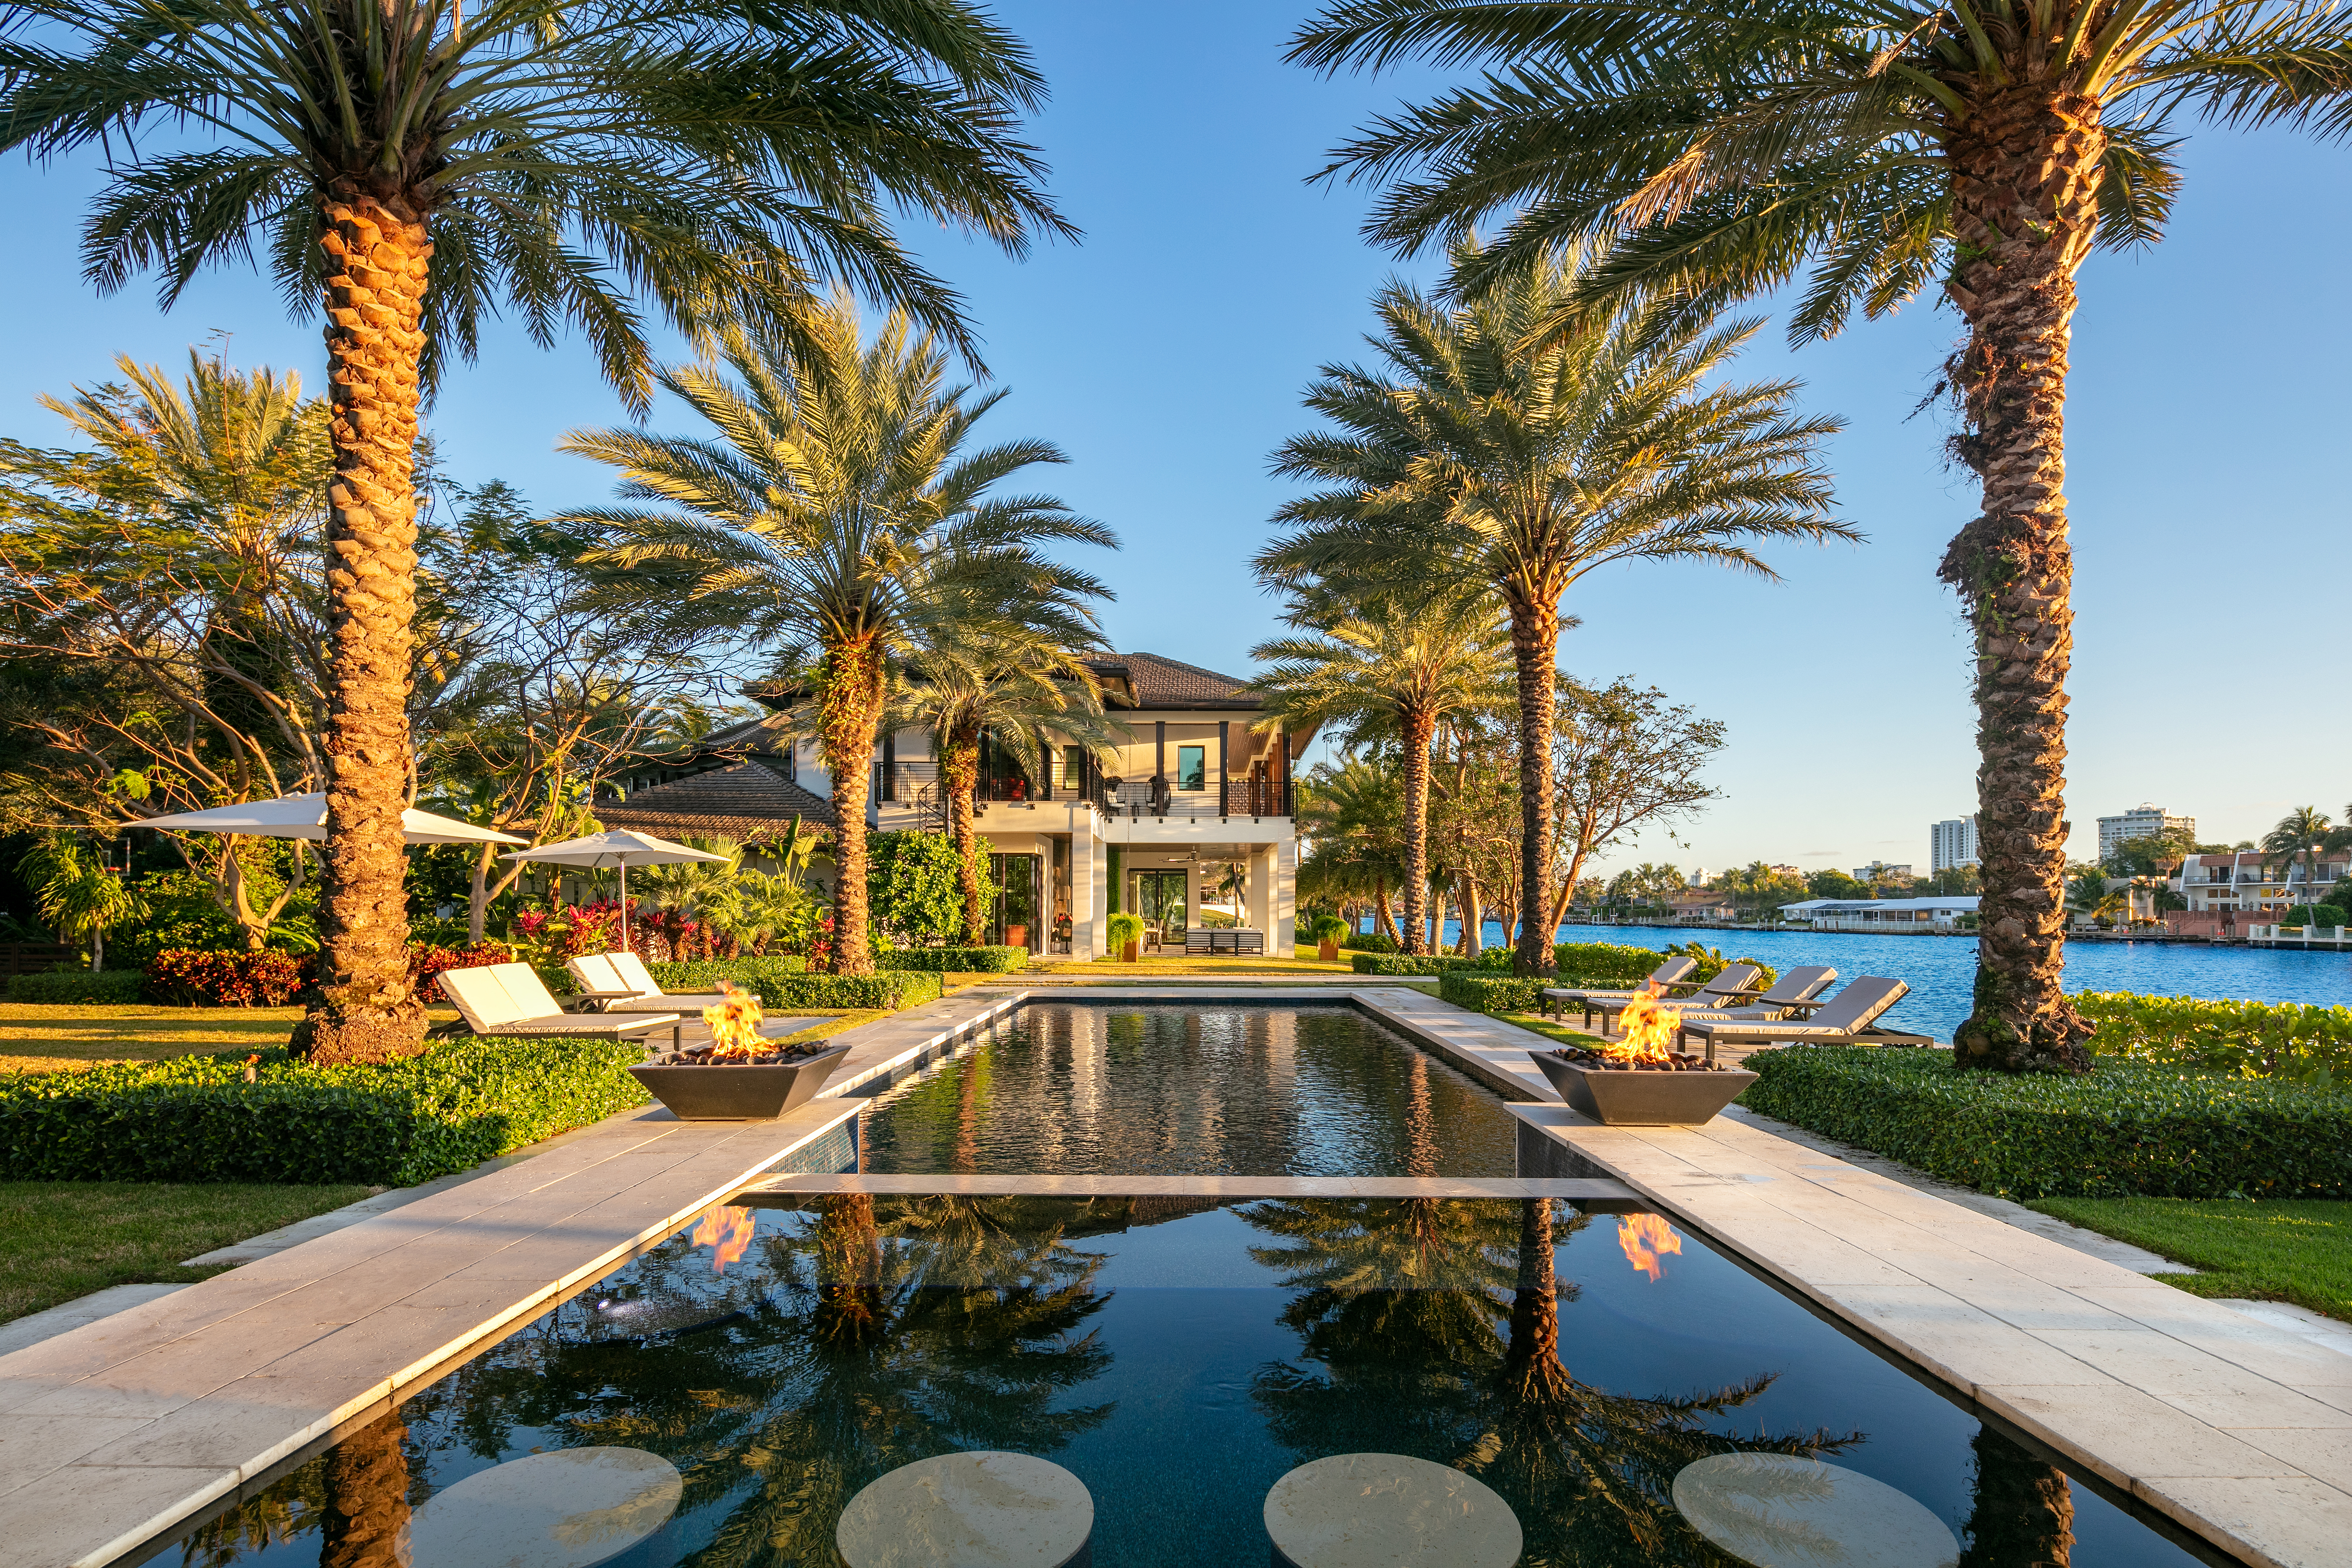 Pool at Compass listing 141 Bay Colony in Fort Lauderdale